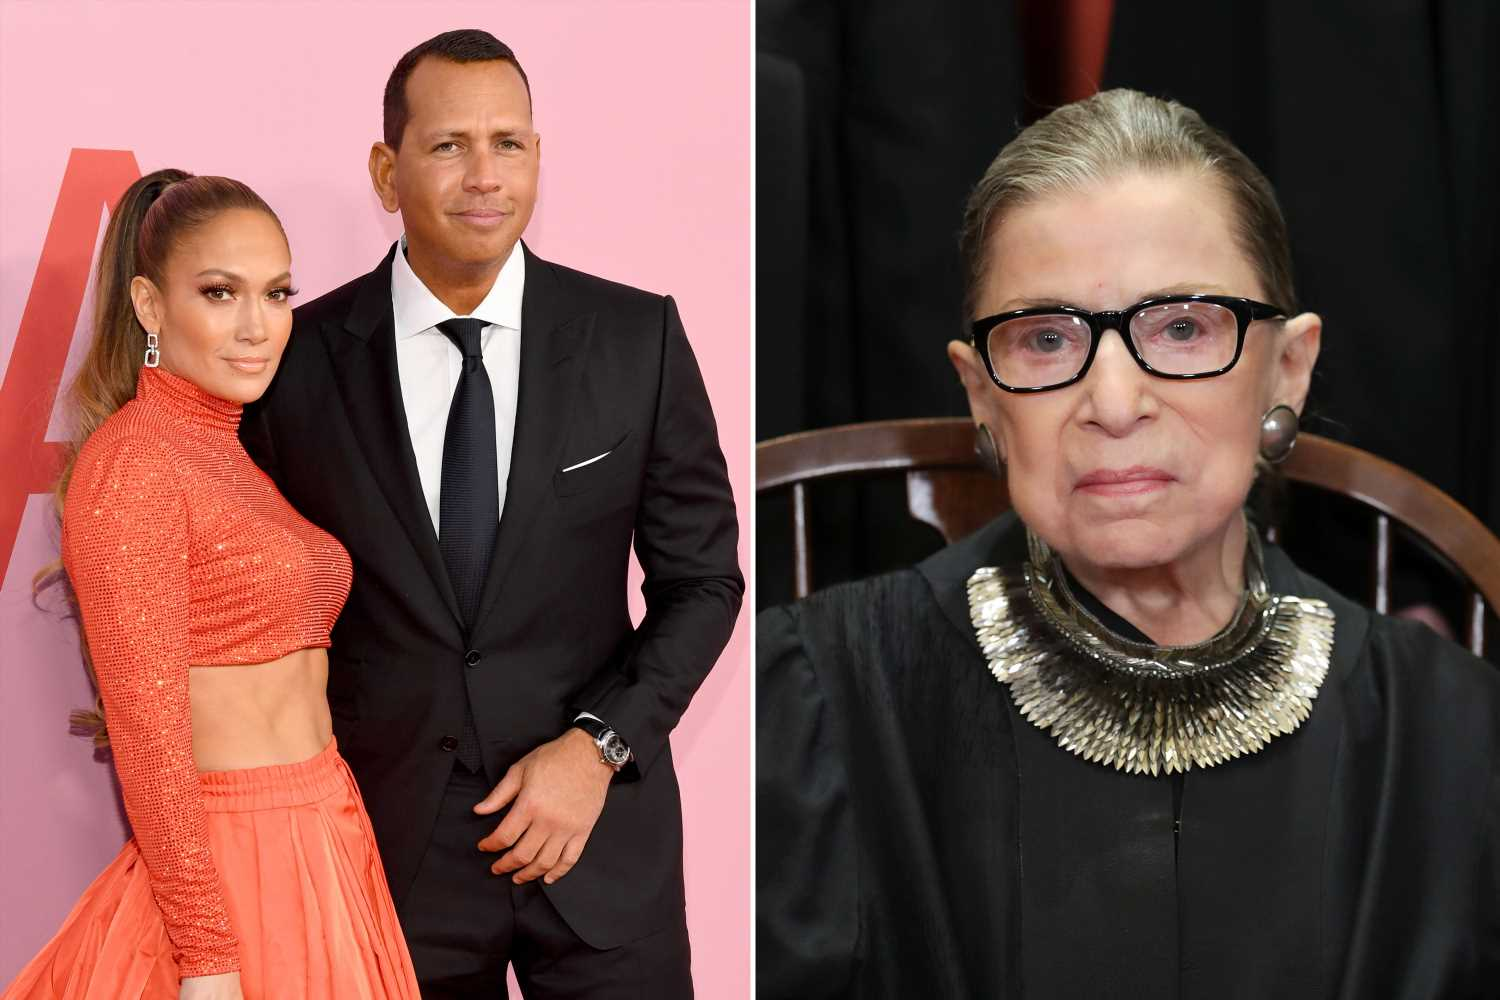 J-Lo and A-Rod ask Ruth Bader Ginsburg for marriage advice